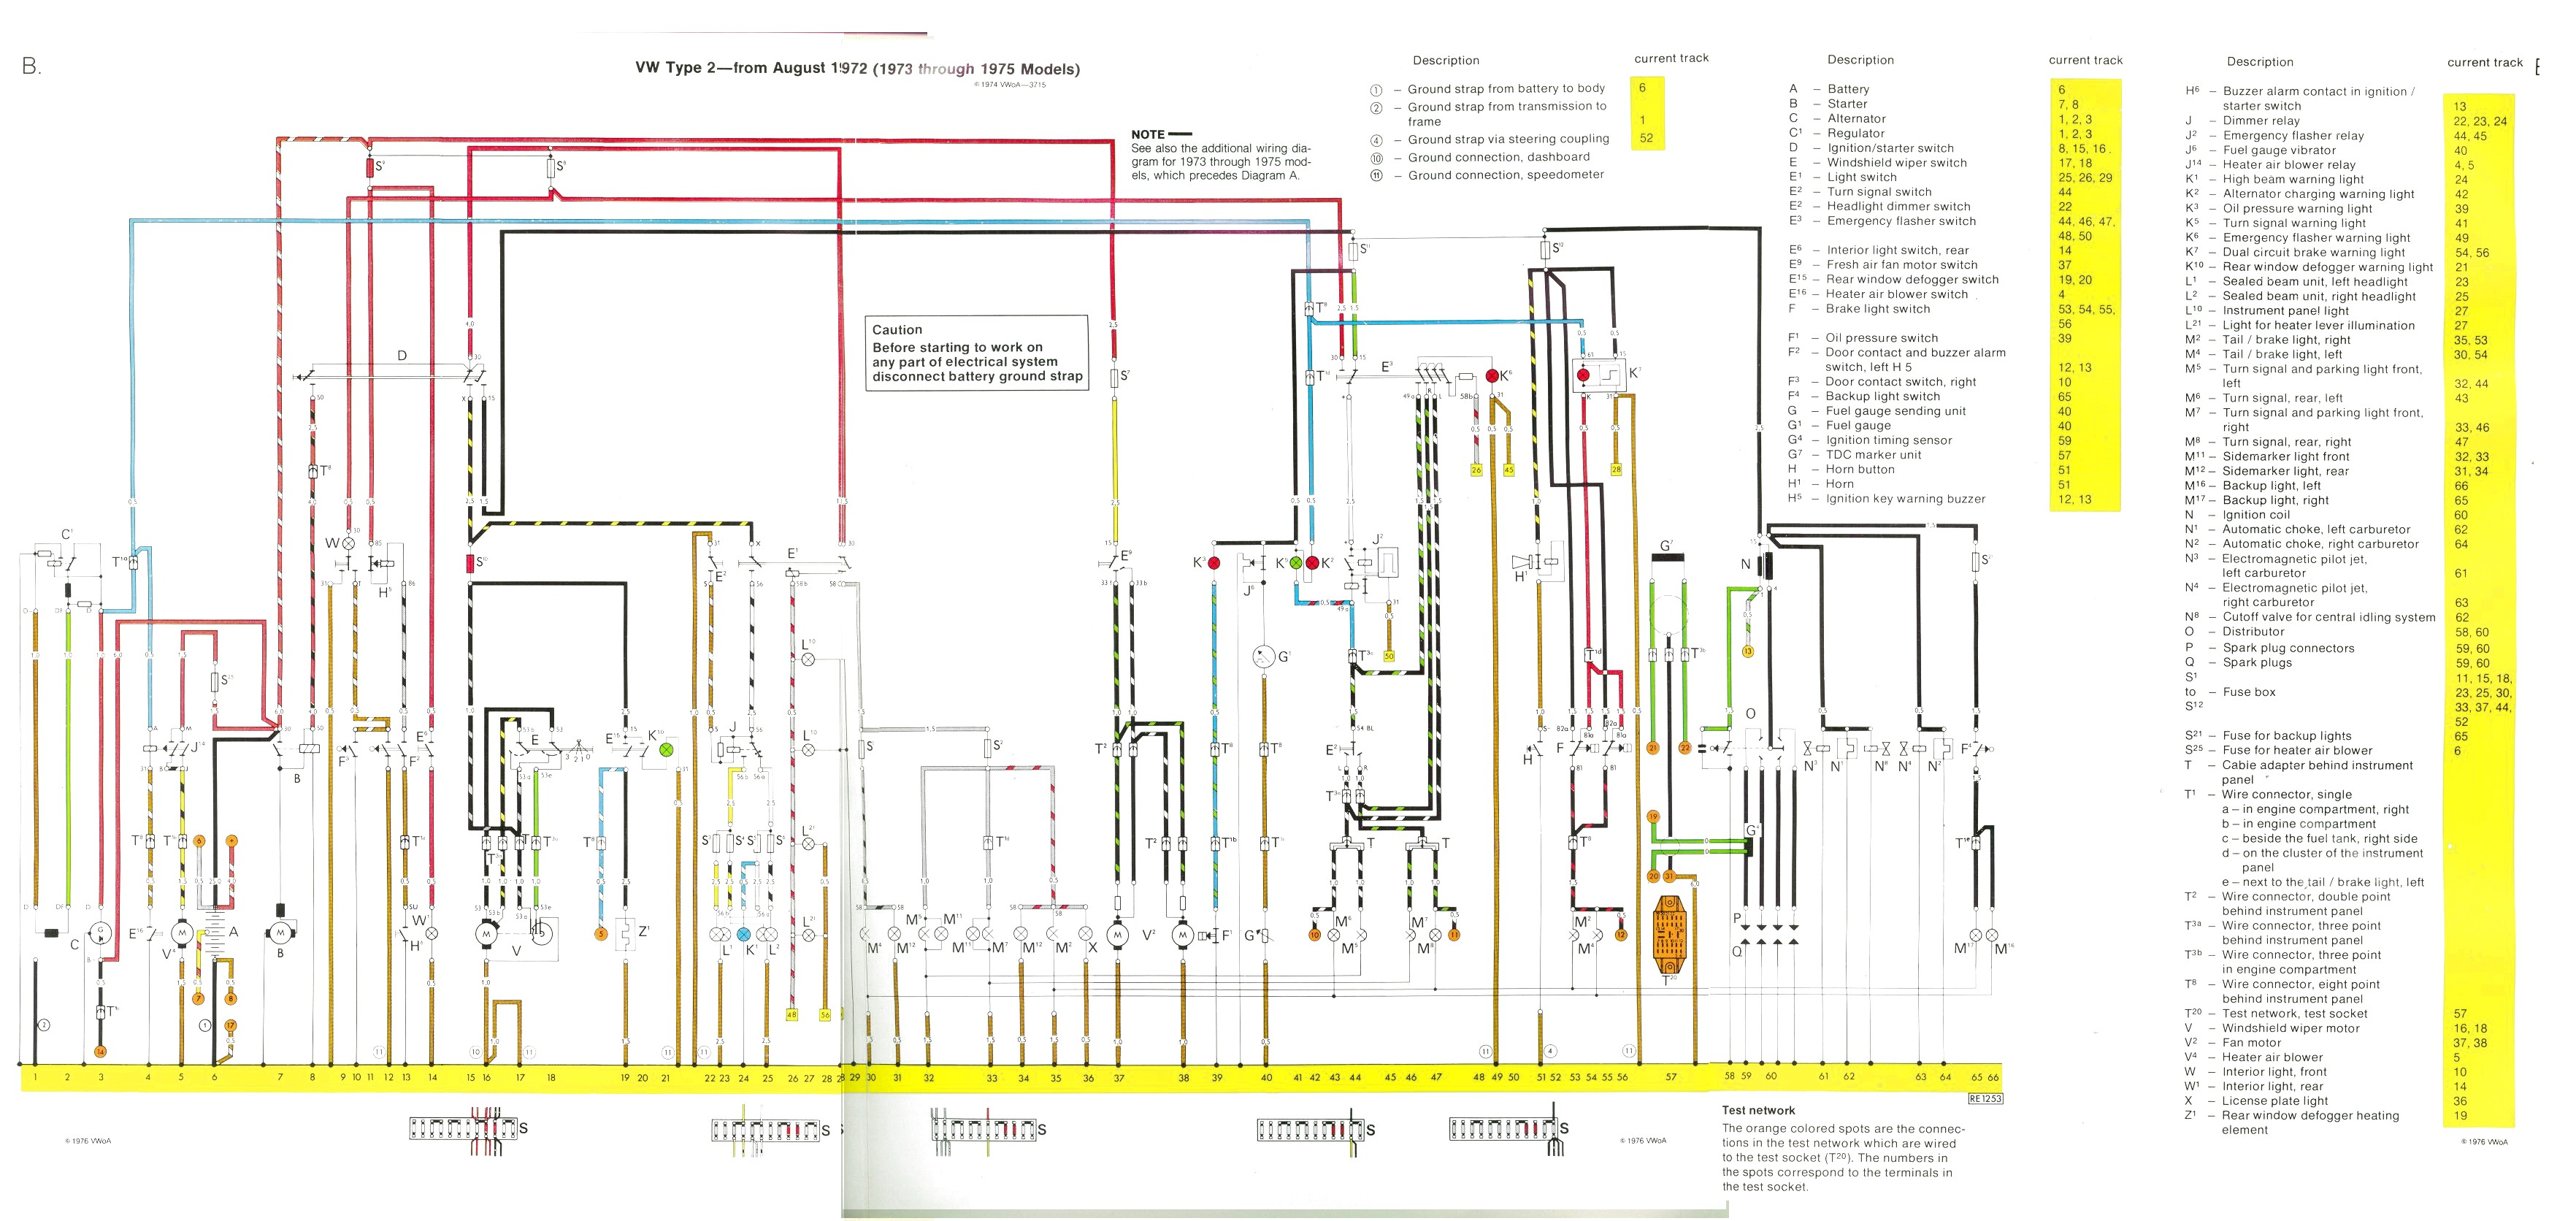 Superb Ic Bus Wiring Diagram Wiring Diagrams For Your Car Or Truck Wiring Cloud Rometaidewilluminateatxorg